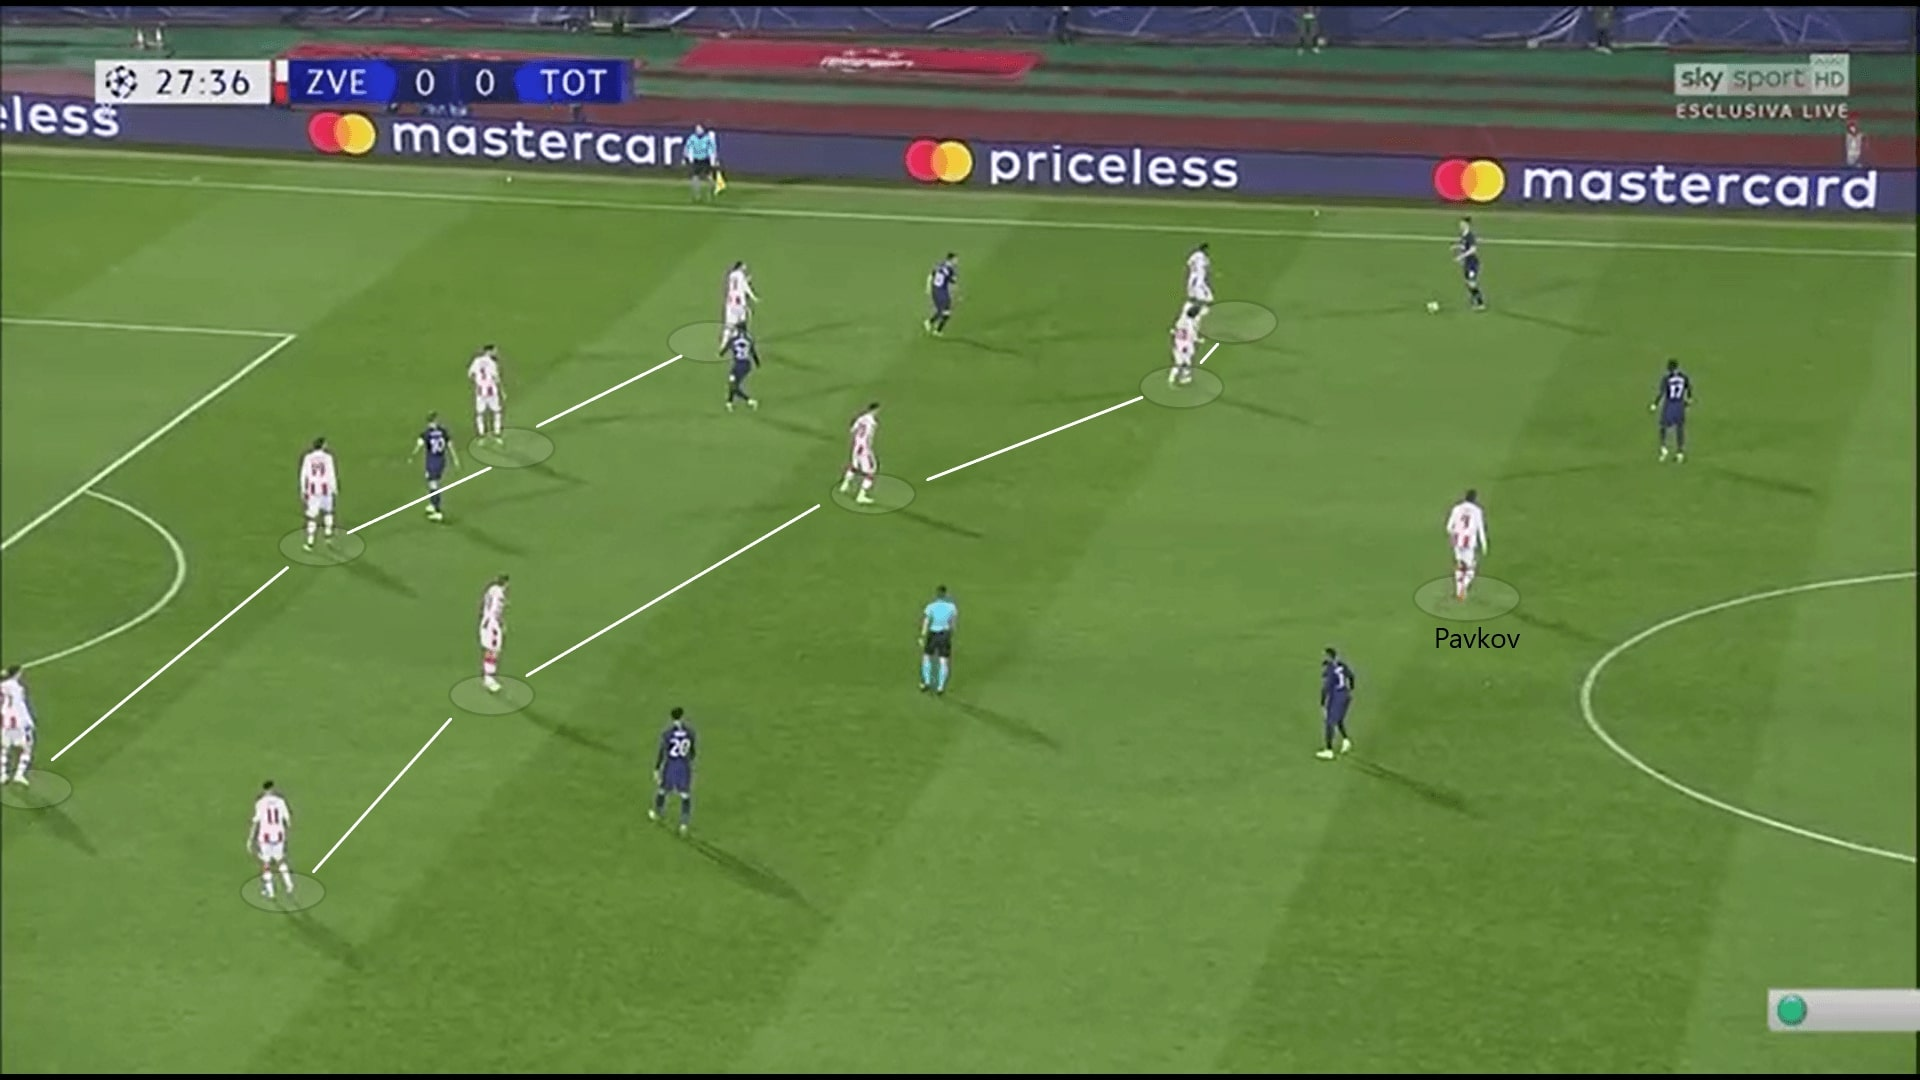 UEFA Champions League 2019/20: Red Star Belgrade vs Tottenham Hotspur - tactical analysis - tactics